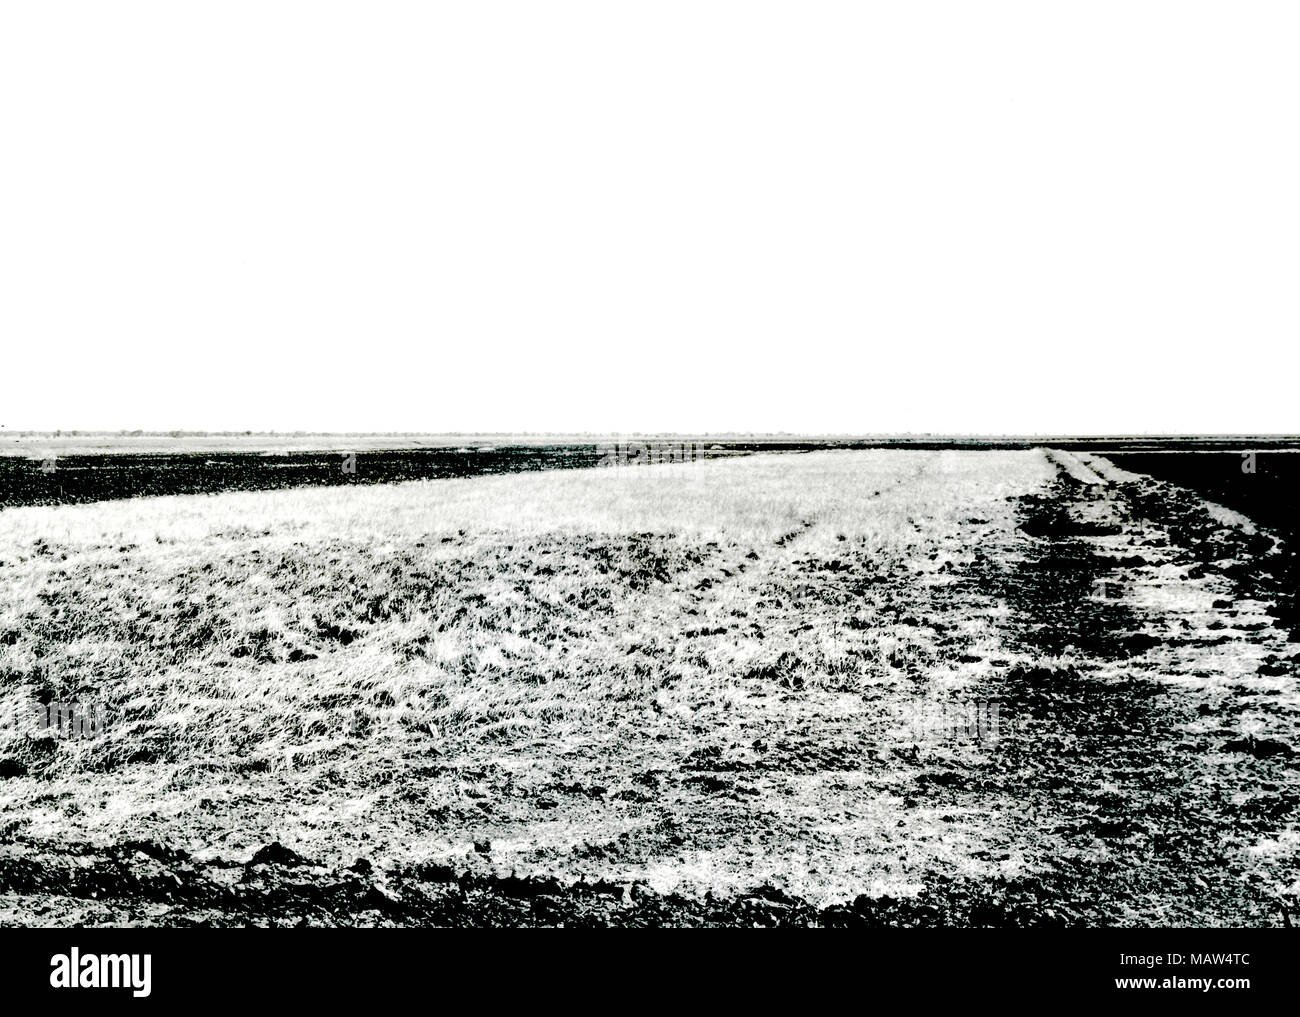 Unclaimed field, Zambia, South Rhodesia 1957 - Stock Image